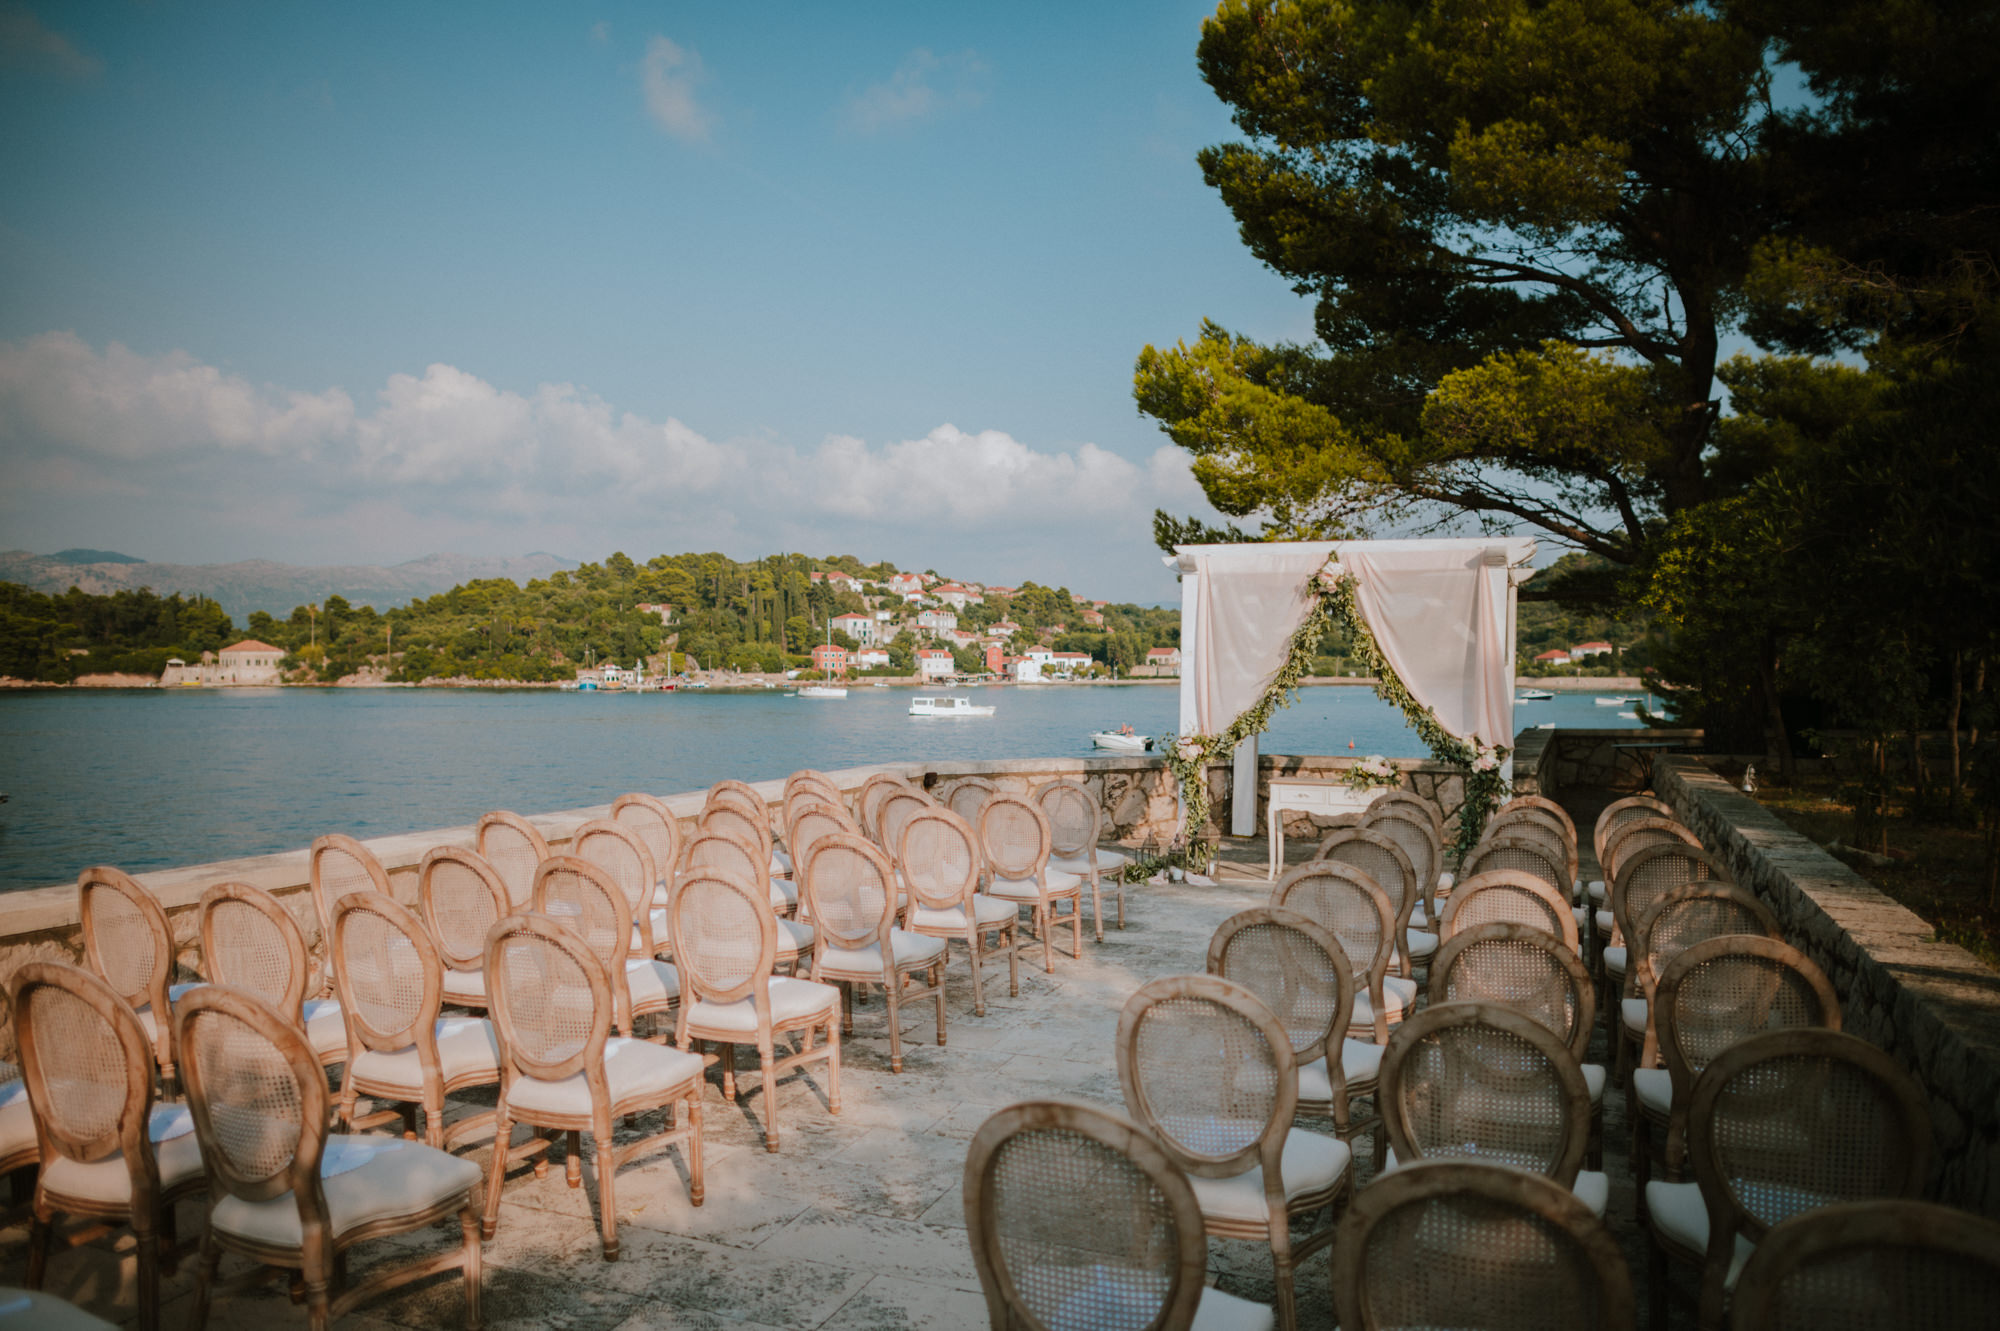 An image of a ceremony set up at Villa Ruza restaurant on Kolocep island off the coast of Dubrovnik. Louis chairs, an arch and a white curtain with greenery on it.